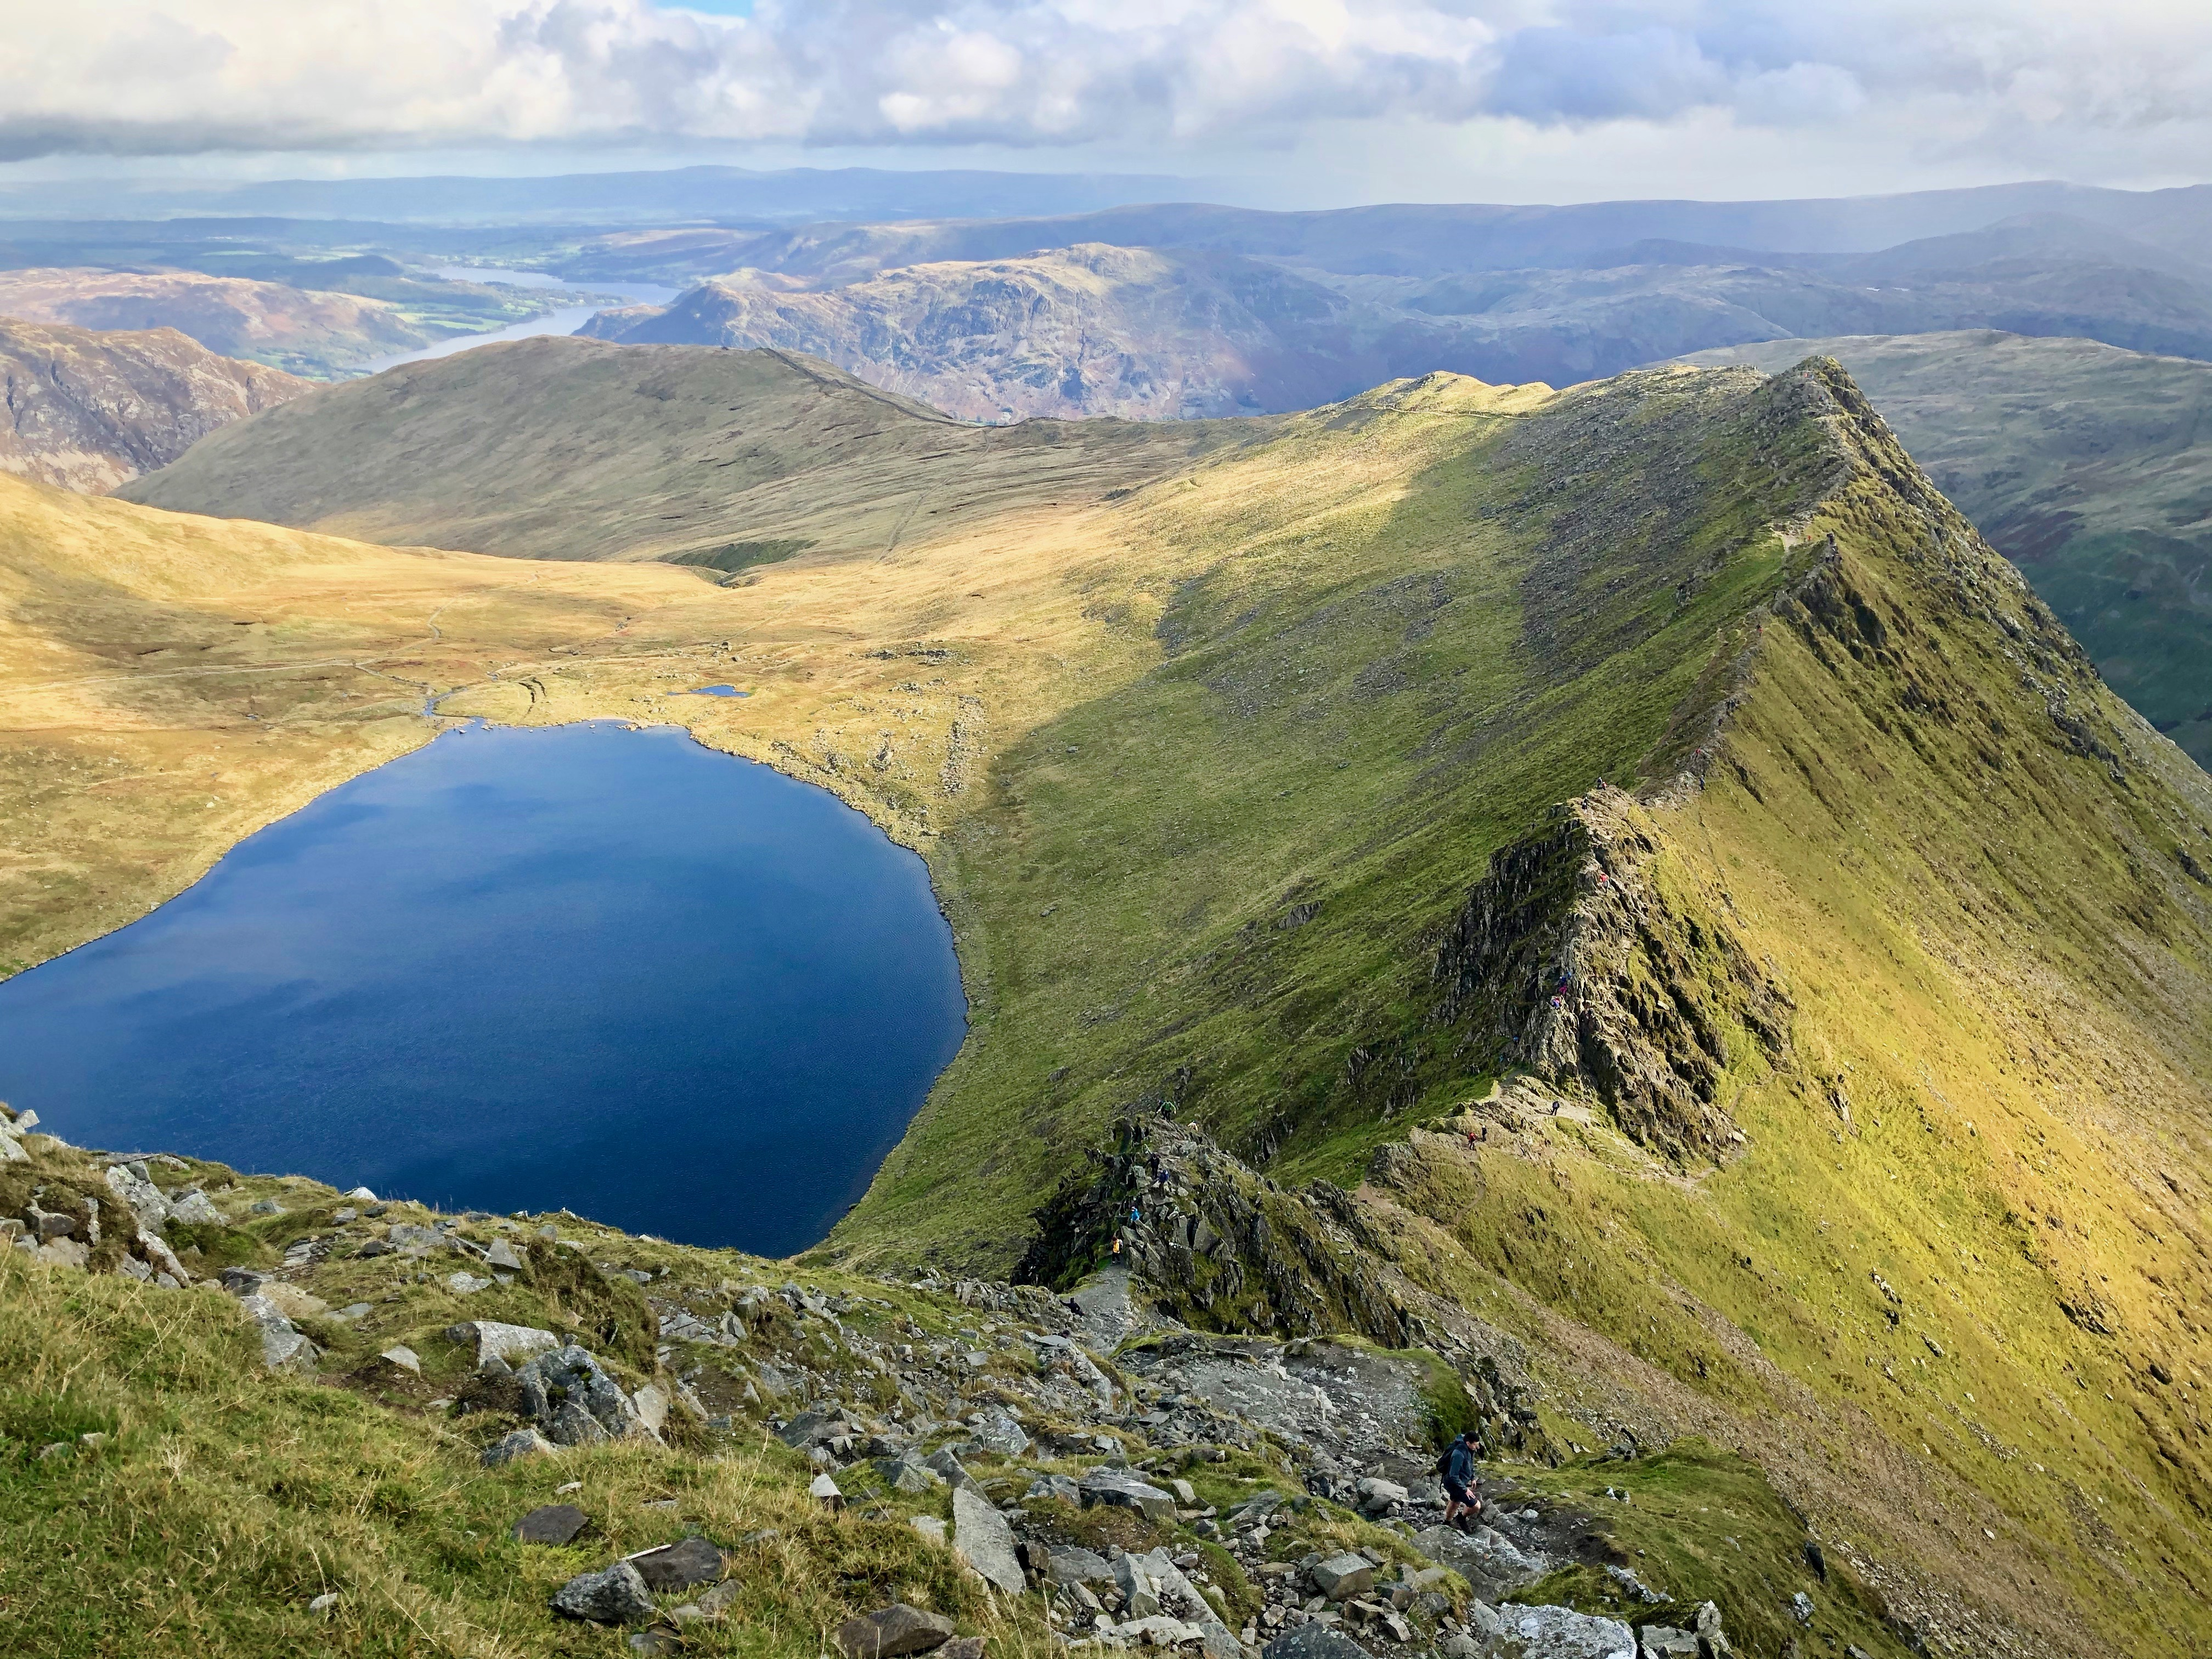 A view of Striding Edge from the top of Helvellyn